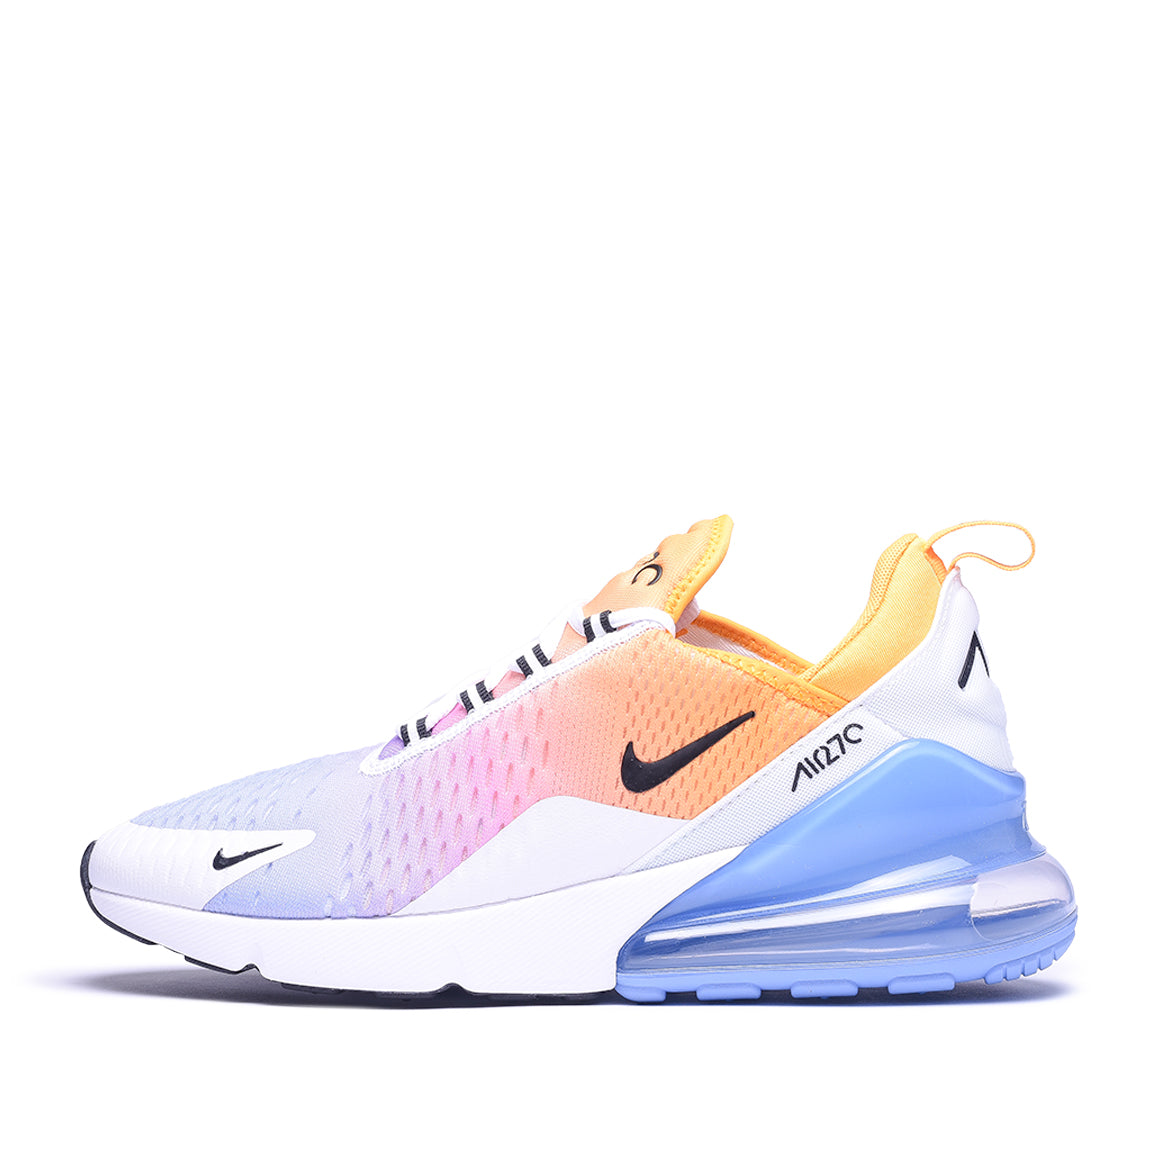 size 40 cabcc 96c9c AIR MAX 270 - UNIVERSITY GOLD / BLACK / PSYCHIC PINK